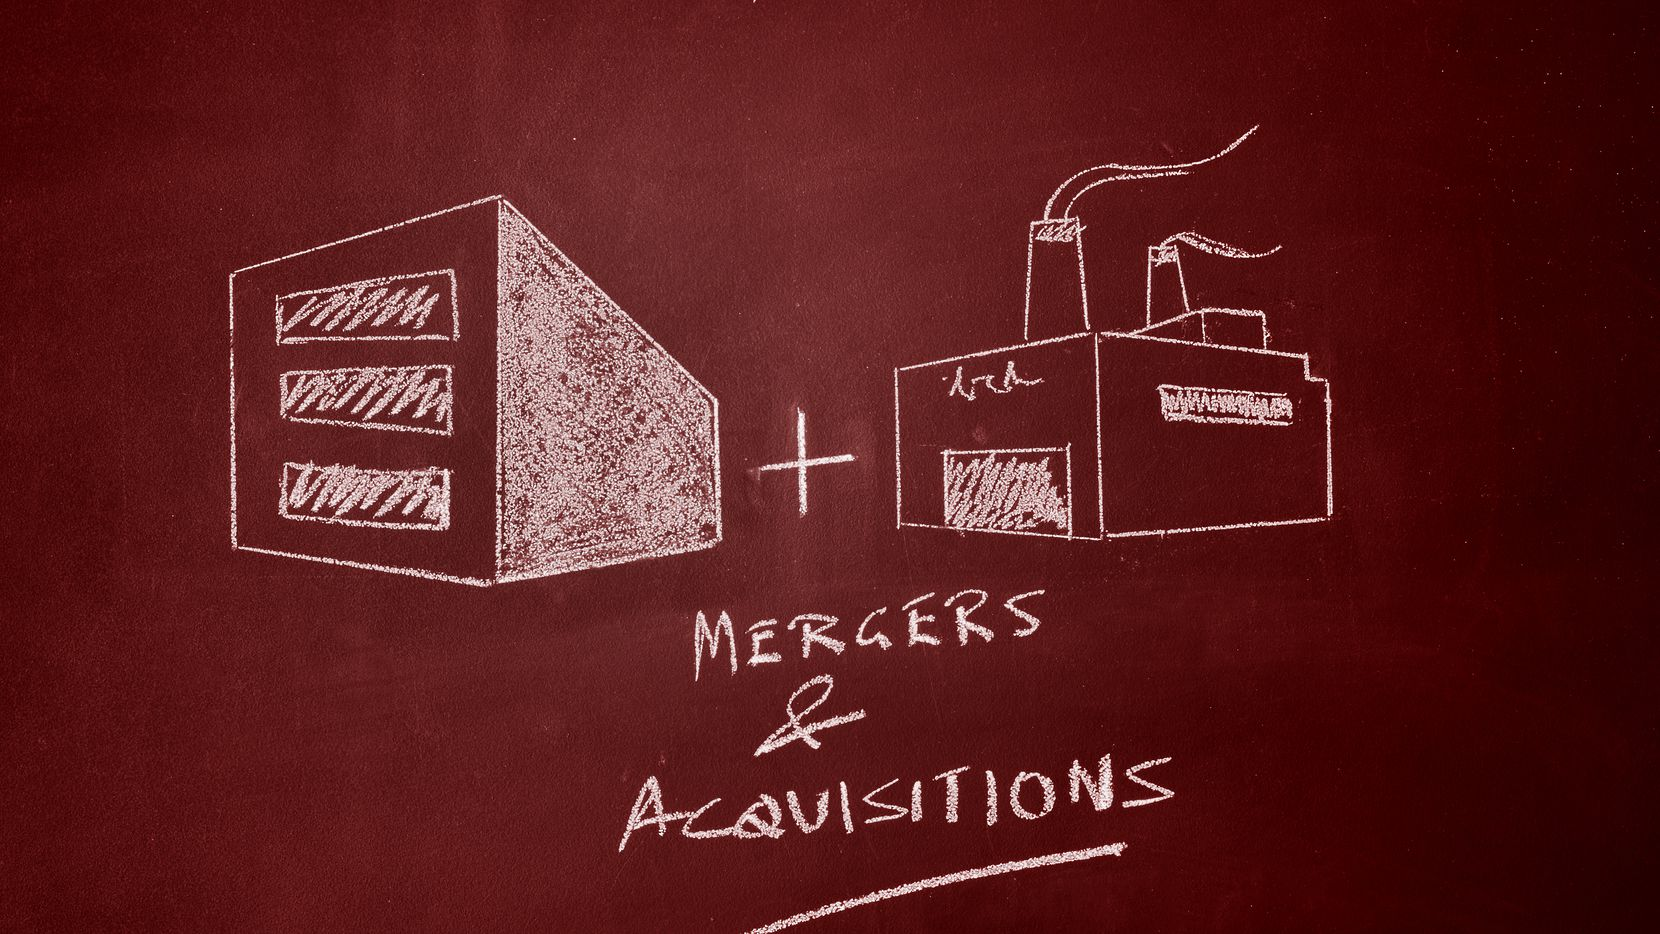 Merger concept on chalkboardOther concepts: